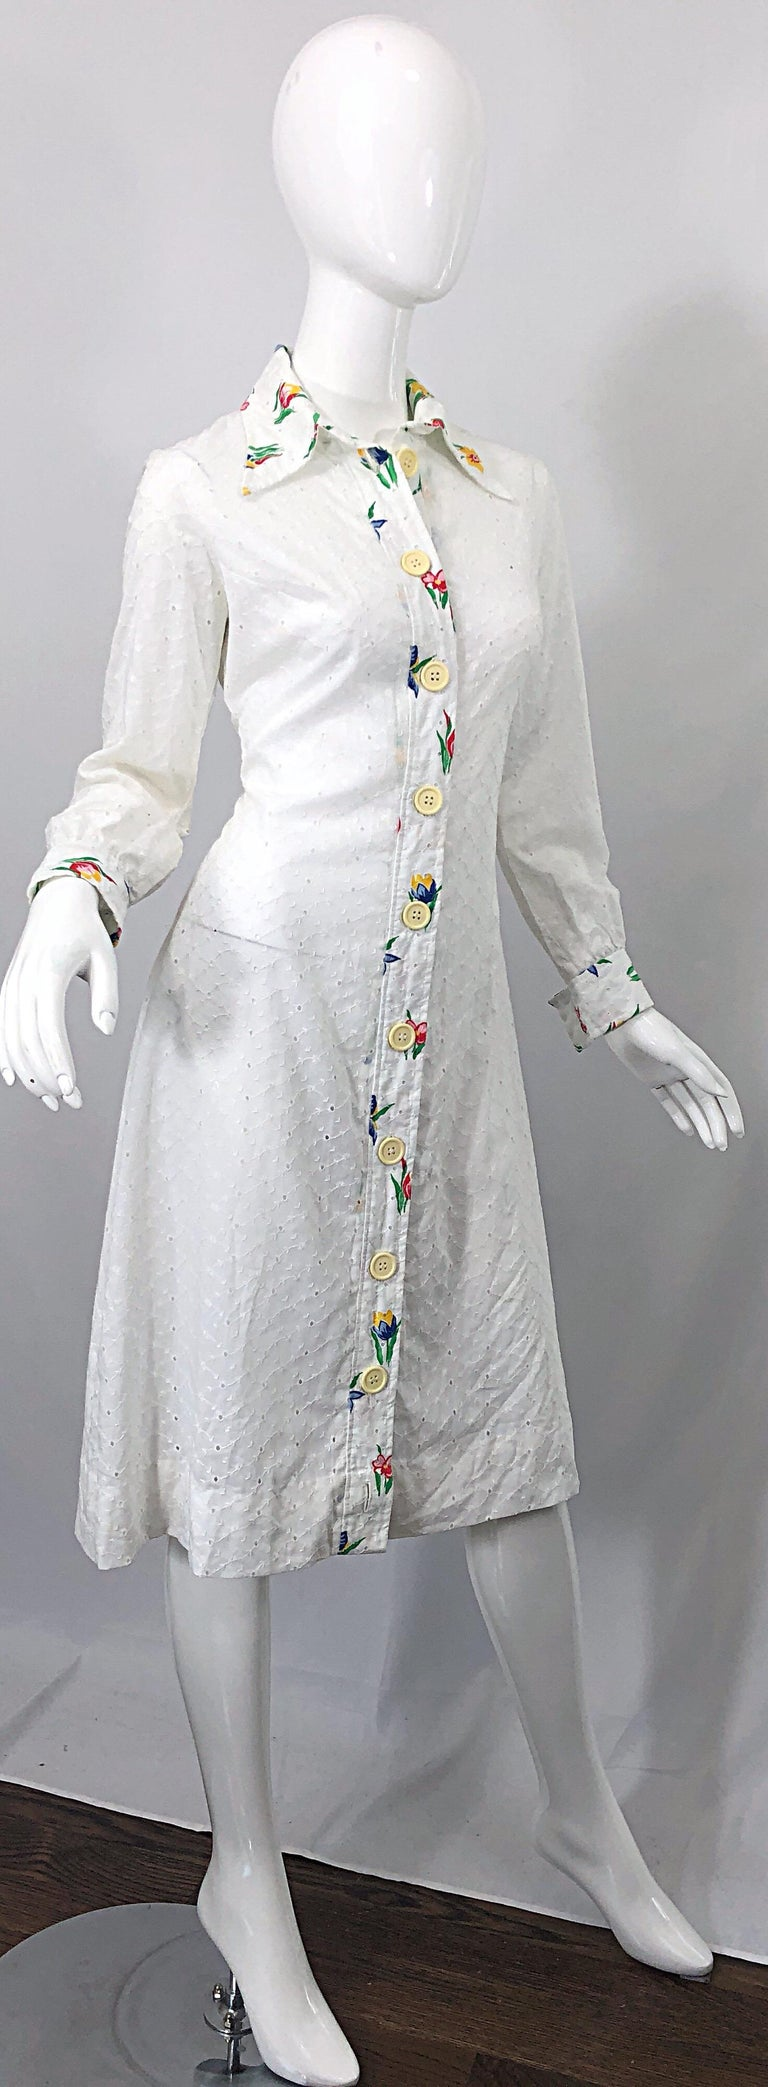 1970s Joseph Magnin White Eyelet Cotton Embrodiered Vintage 70s Shirt Dress For Sale 7